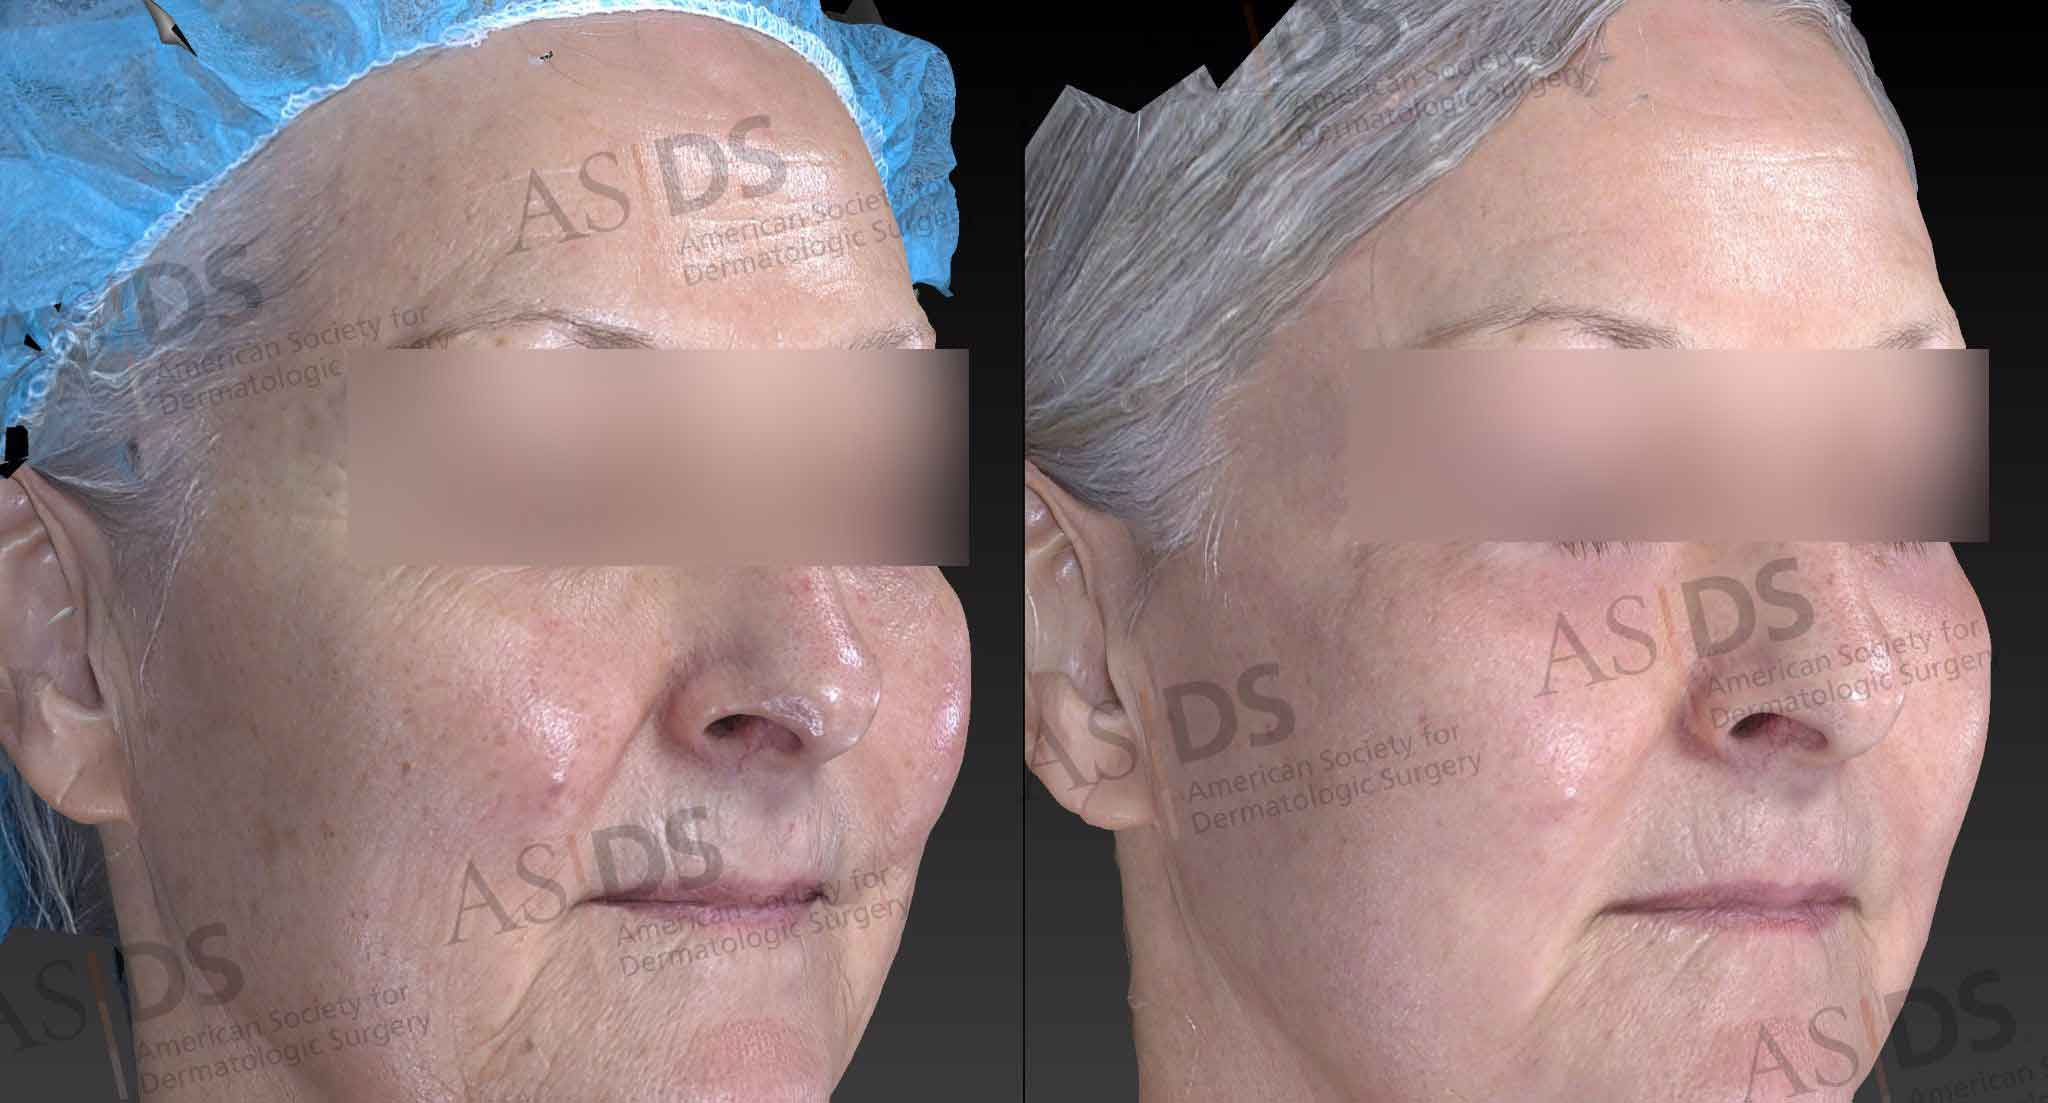 Before (left) and after (right) fractionated ablative CO2 resurfacing